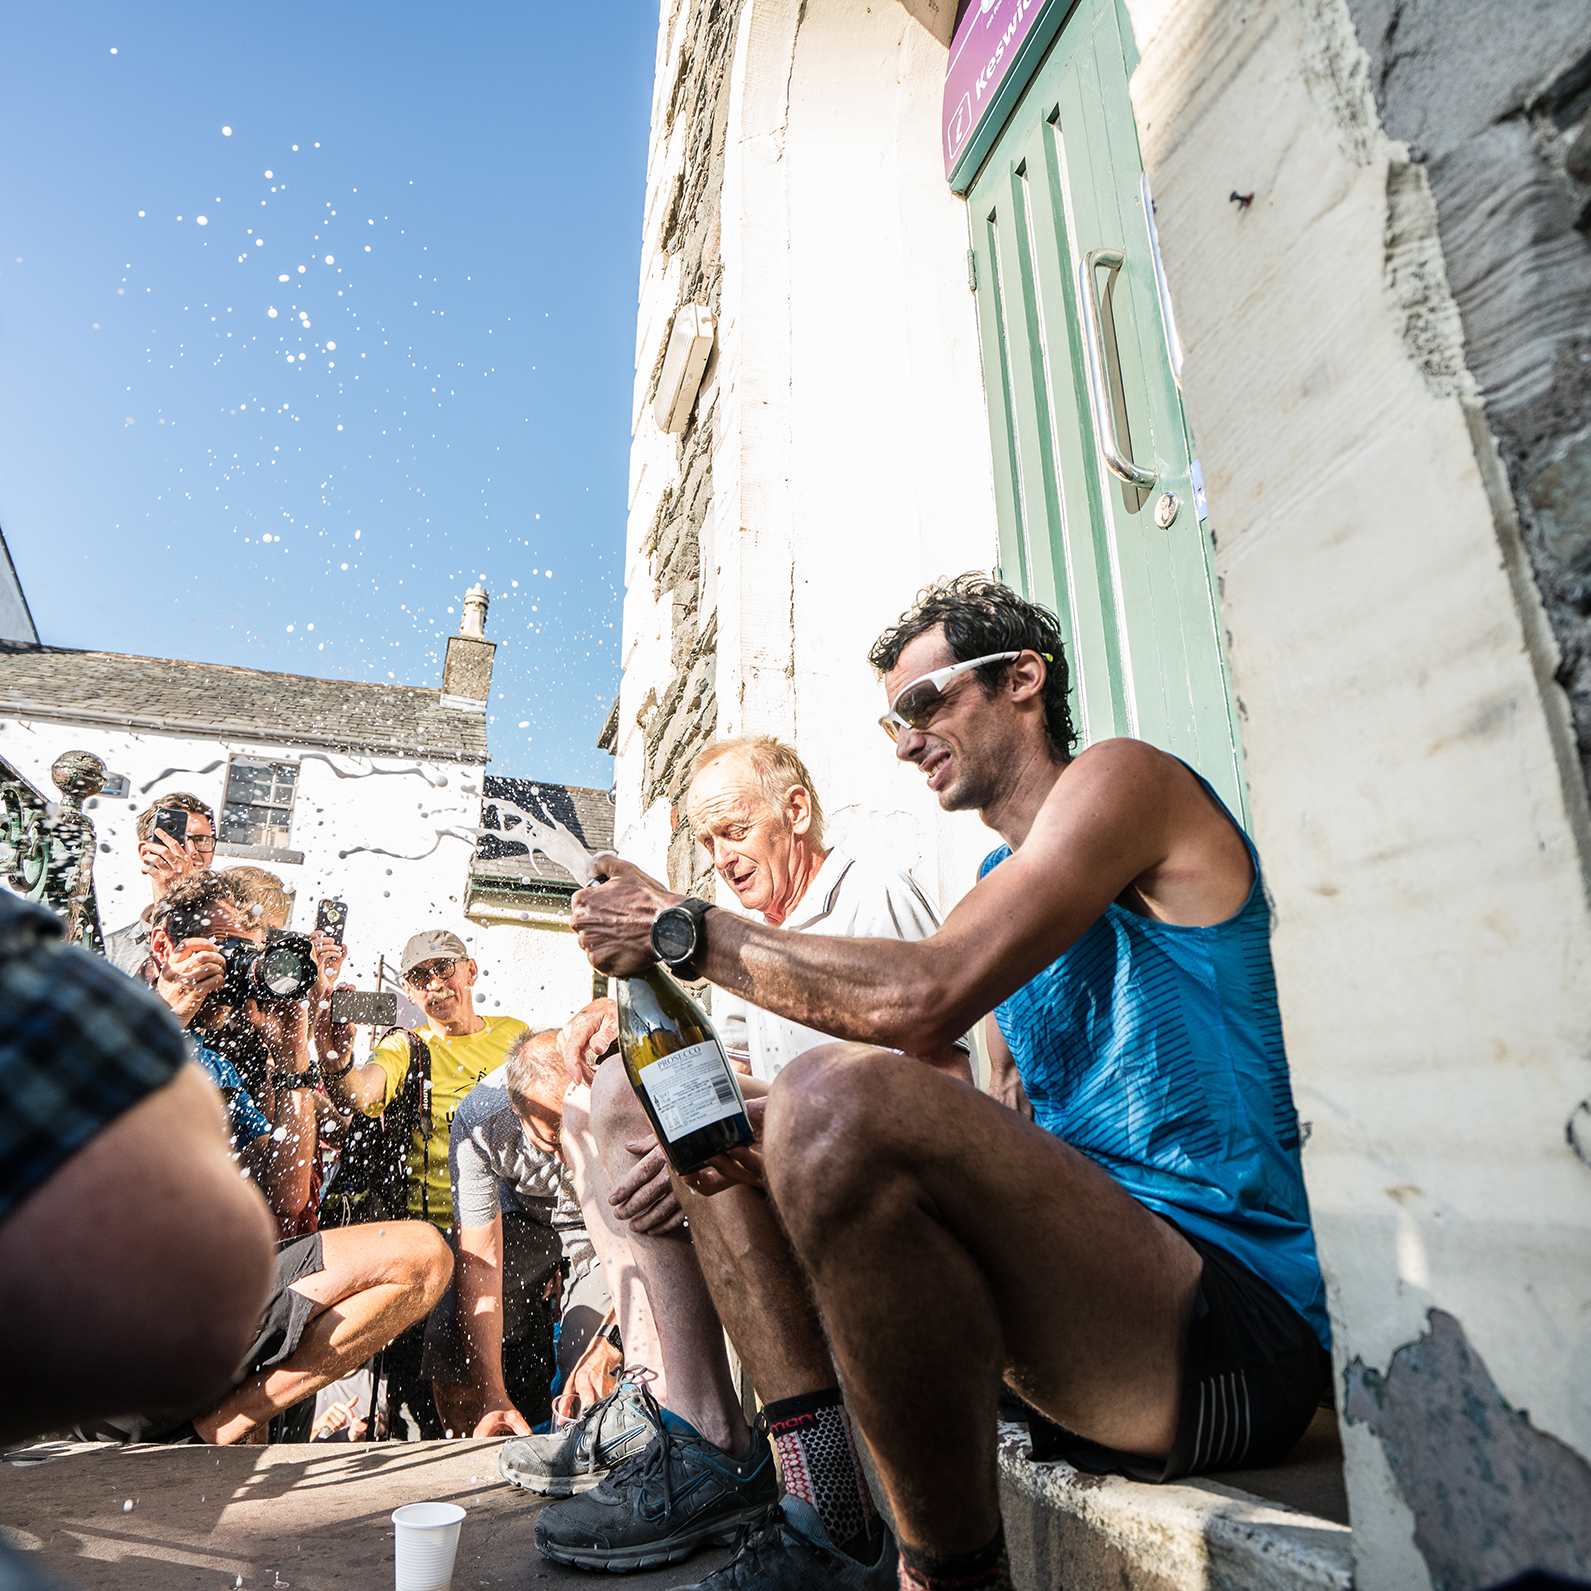 Kilian Jornet celebrates outside Moot Hall with previous record-holder Billy Bland (pic credit: Tim Harper)